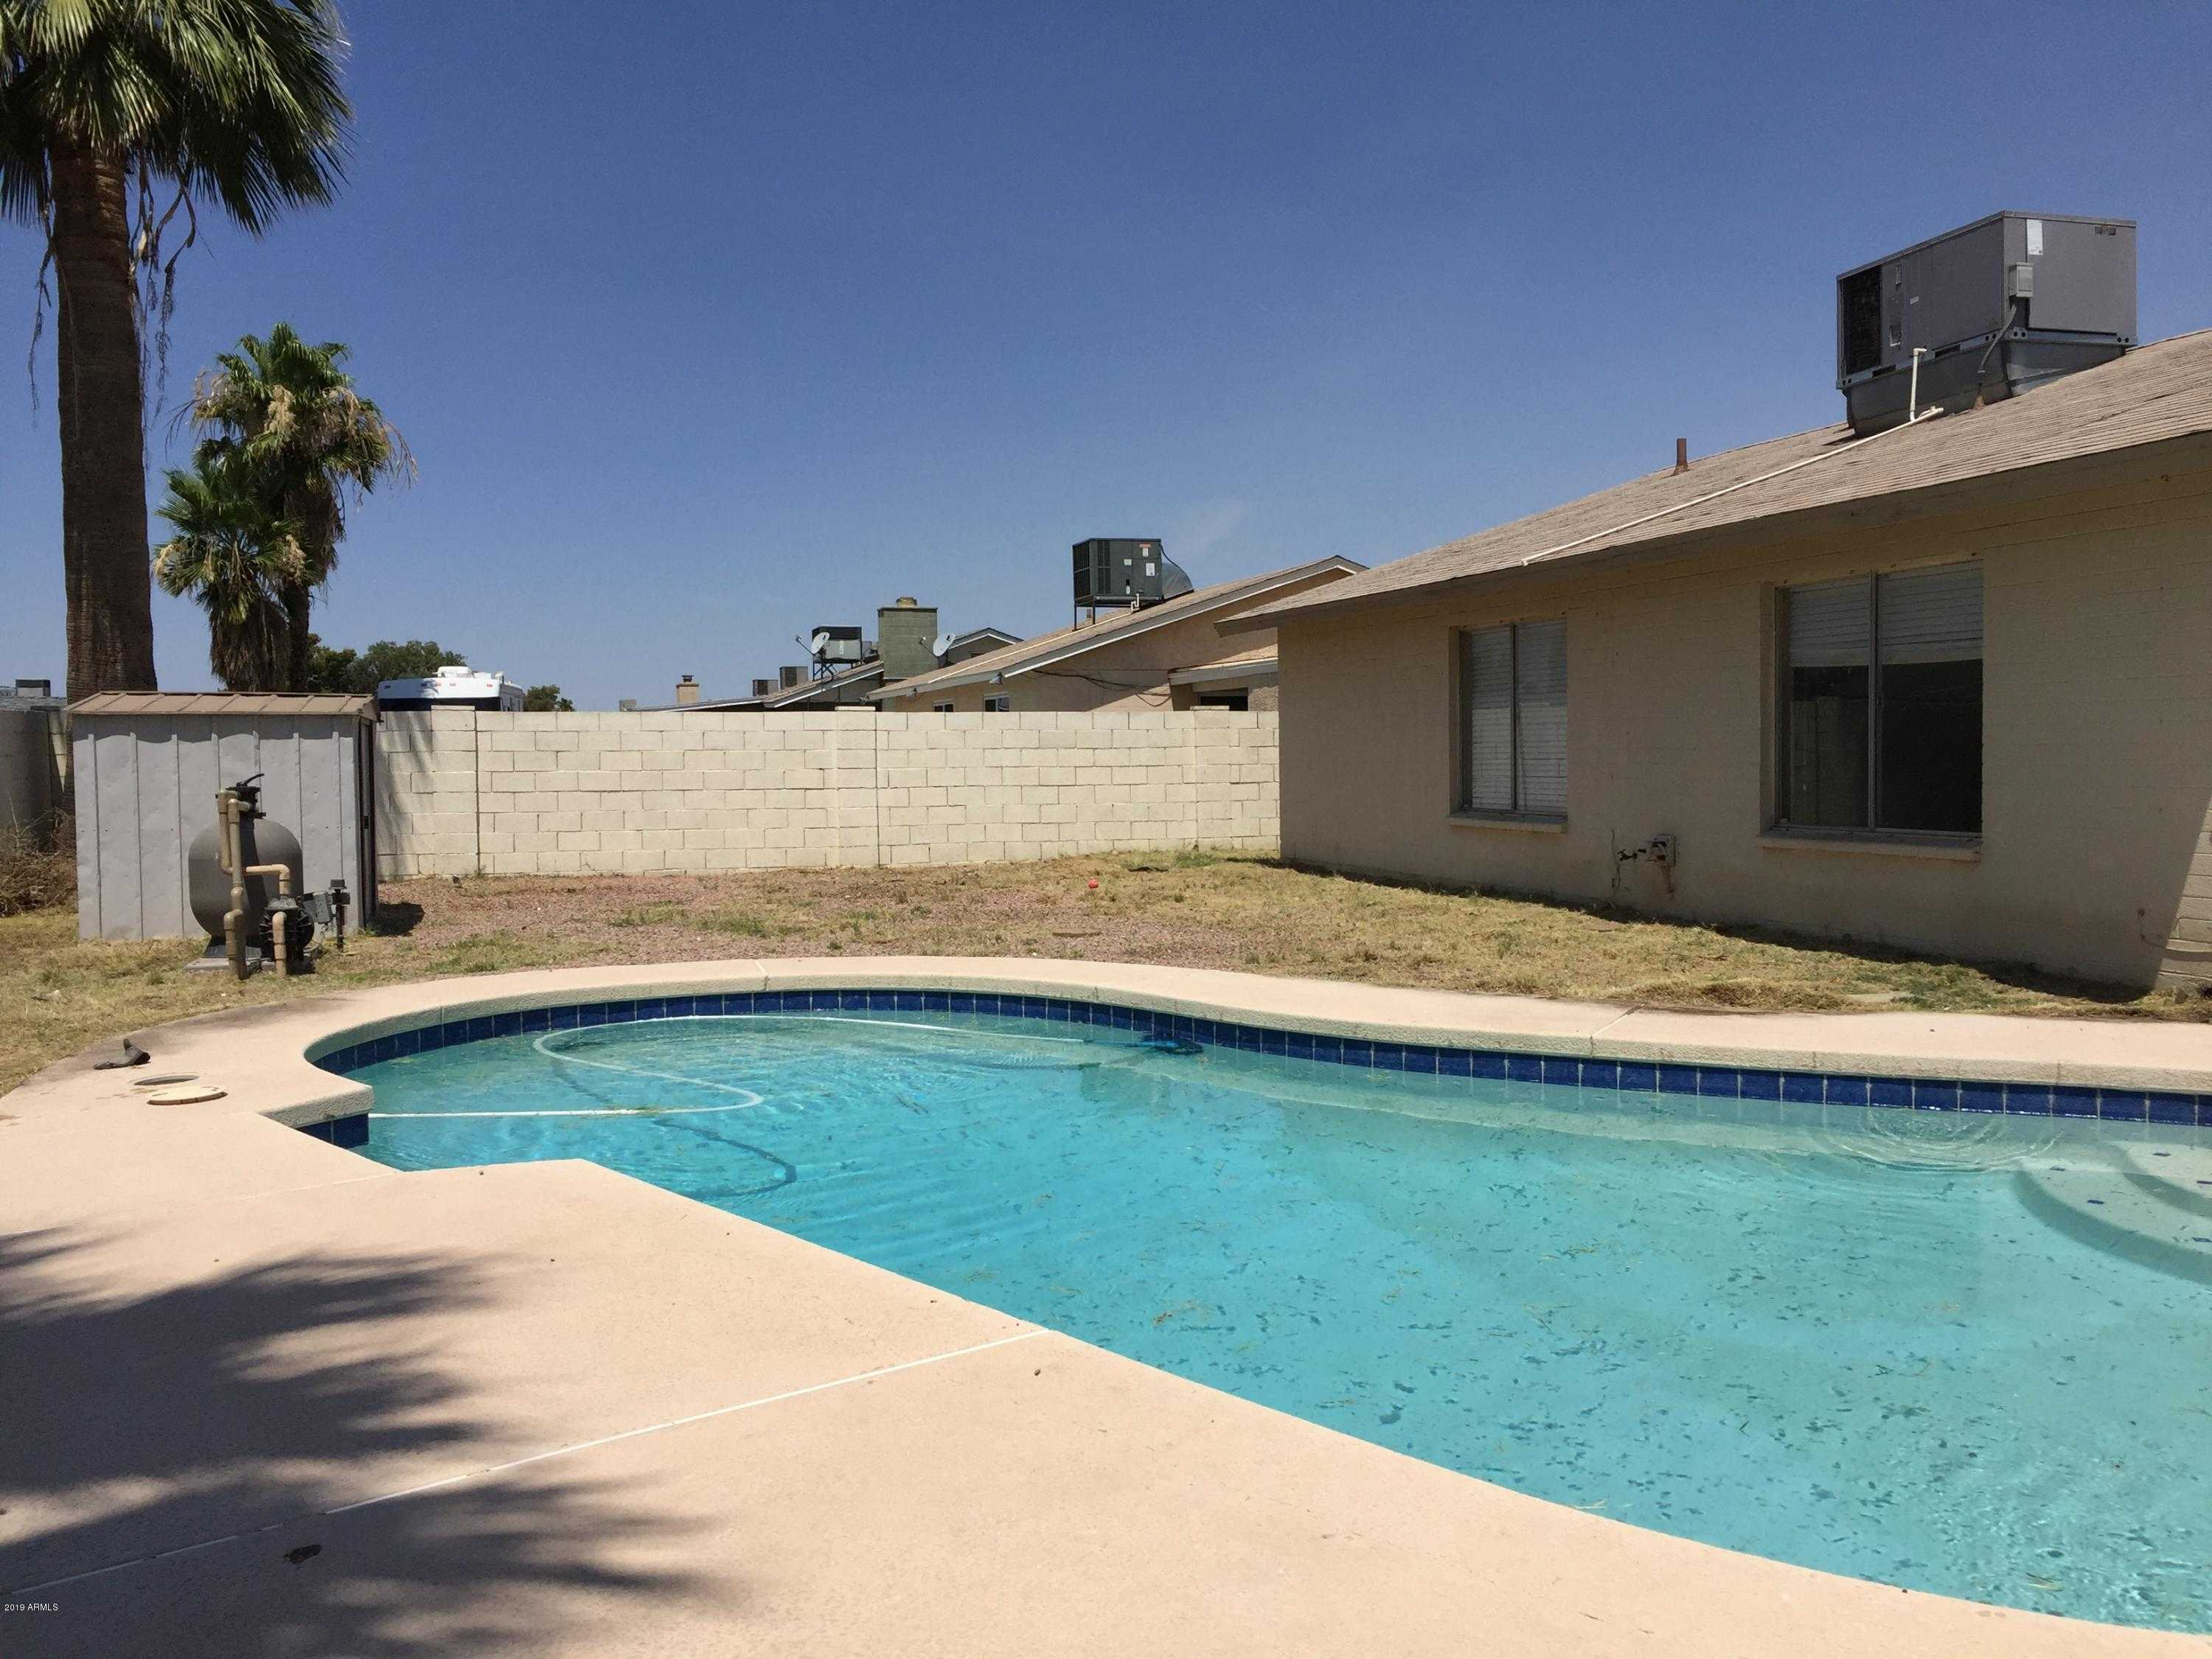 $218,000 - 3Br/2Ba - Home for Sale in Braemar Estates 2, Glendale